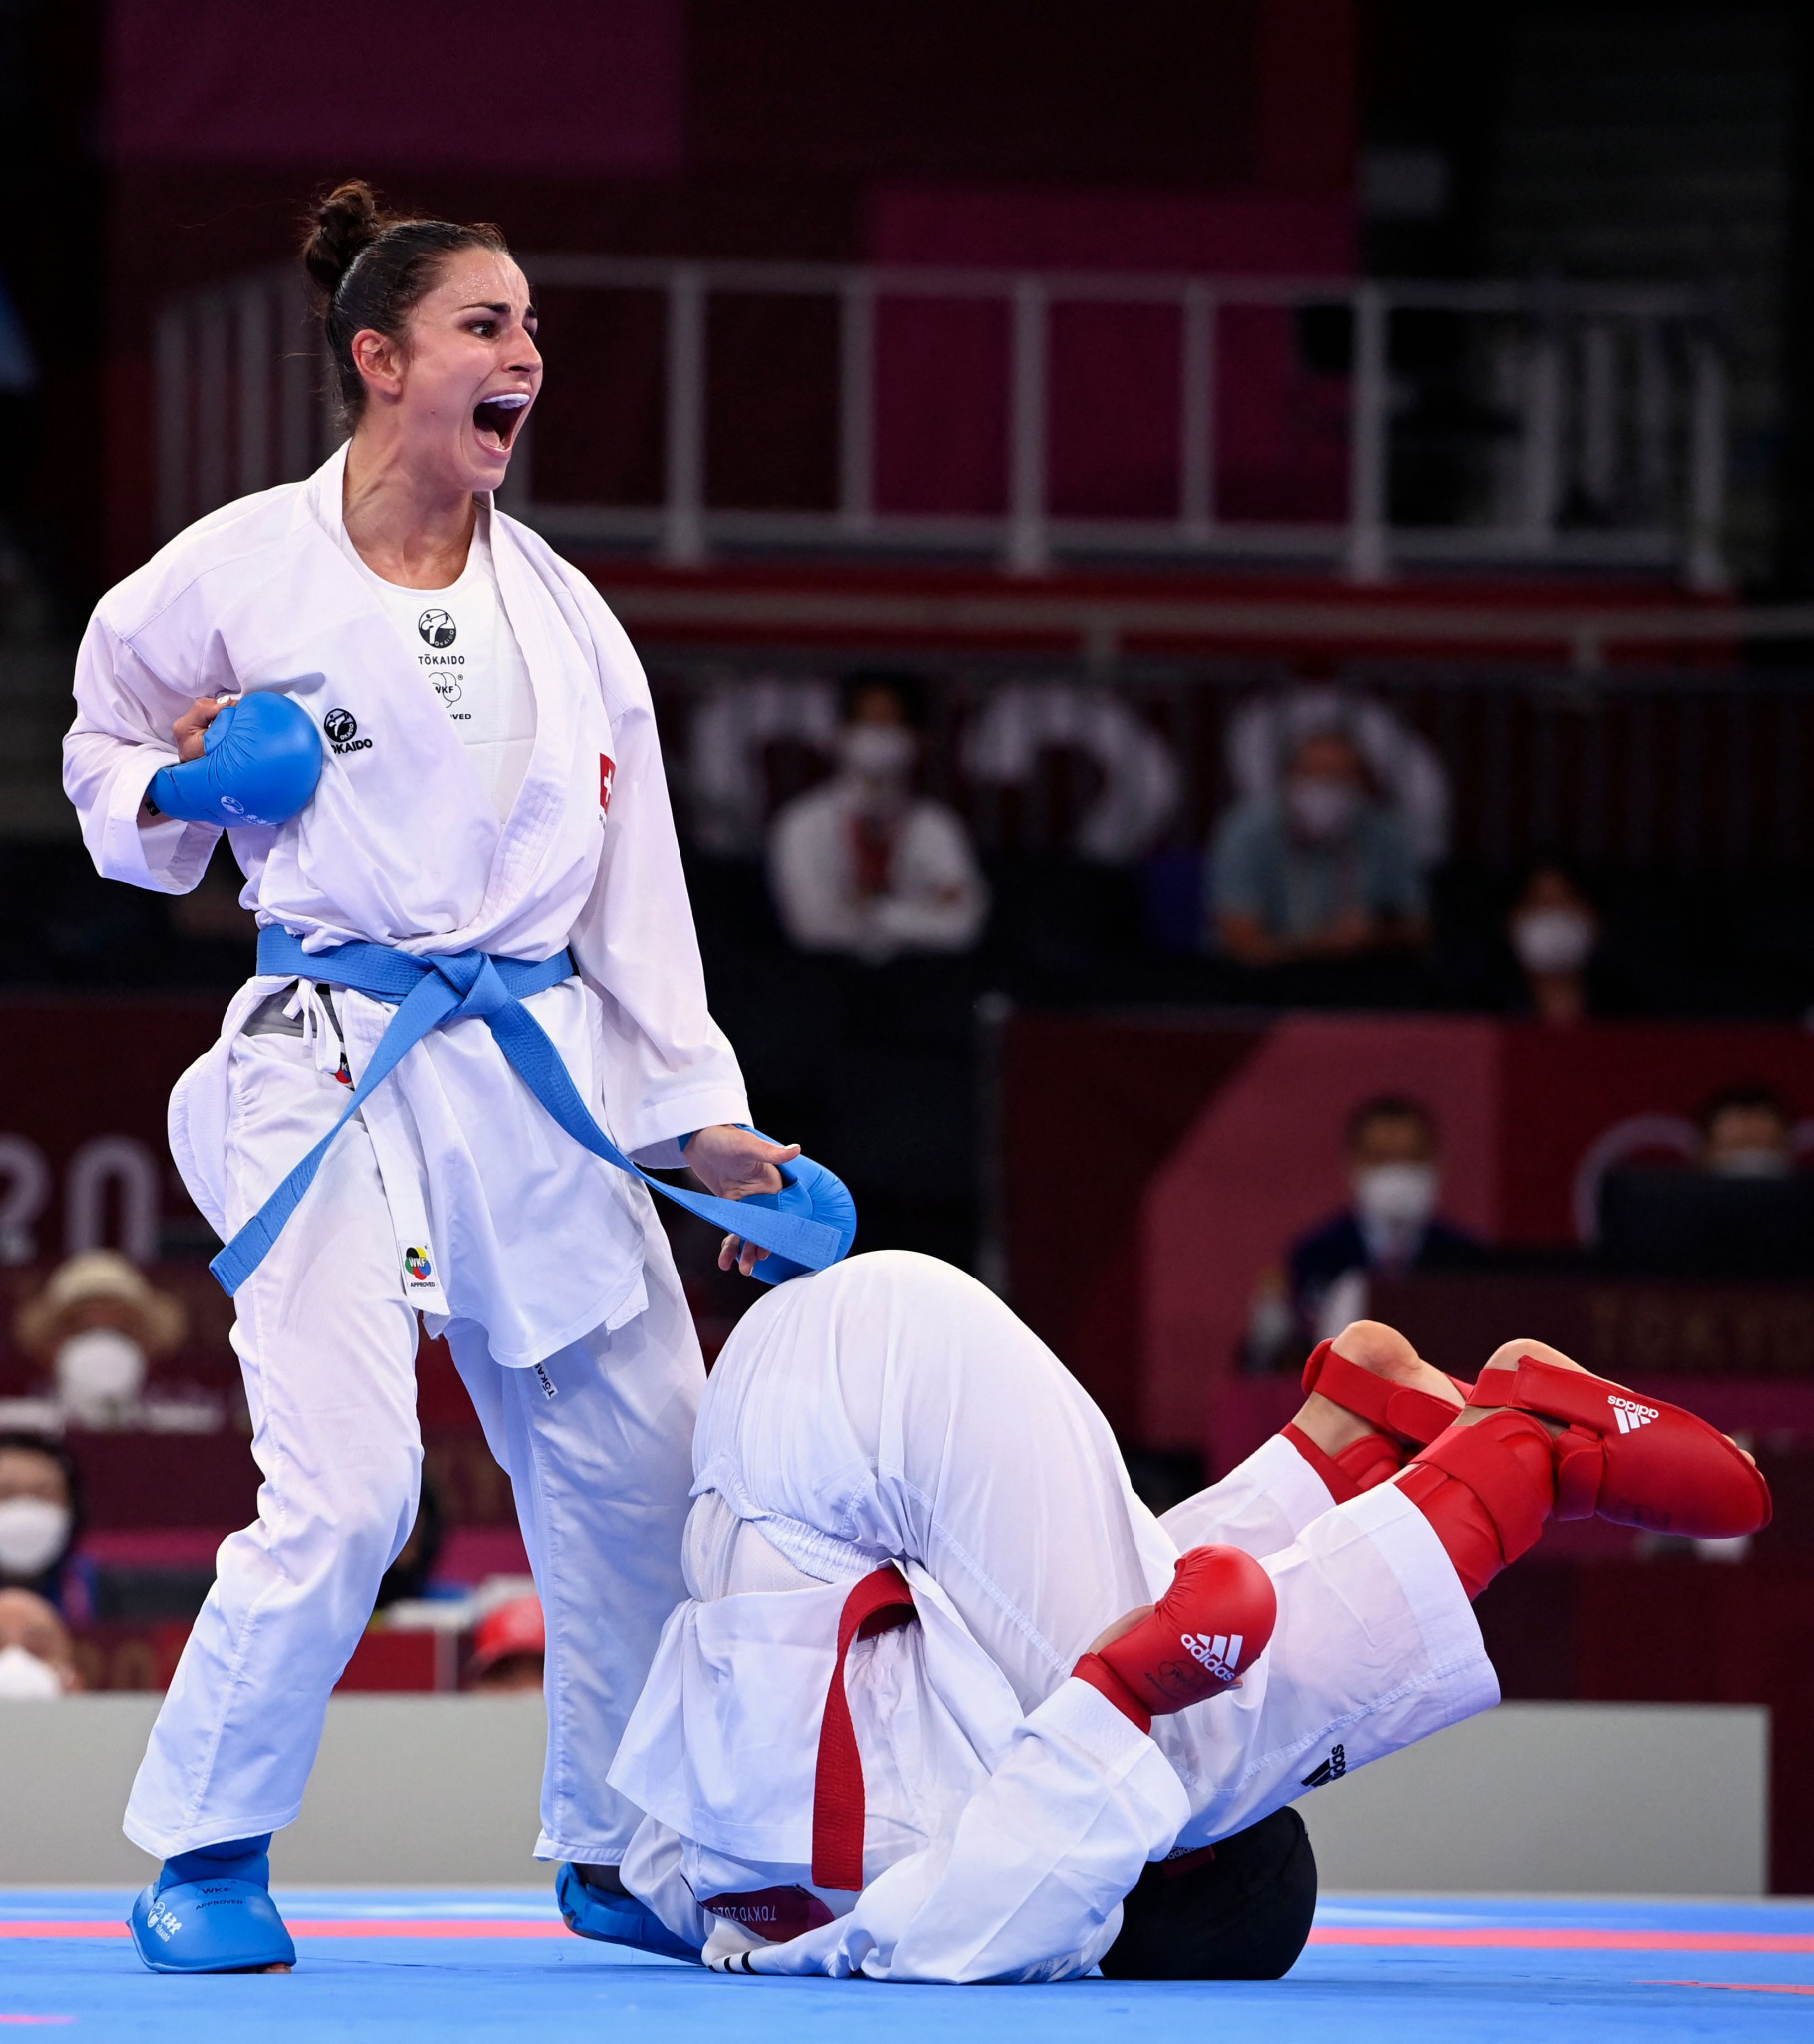 Elena Quirici, left, also progressed at the Karate 1-Premier League in the women's under-68kg kumite after featuring at this summer's Olympic Games ©Getty Images